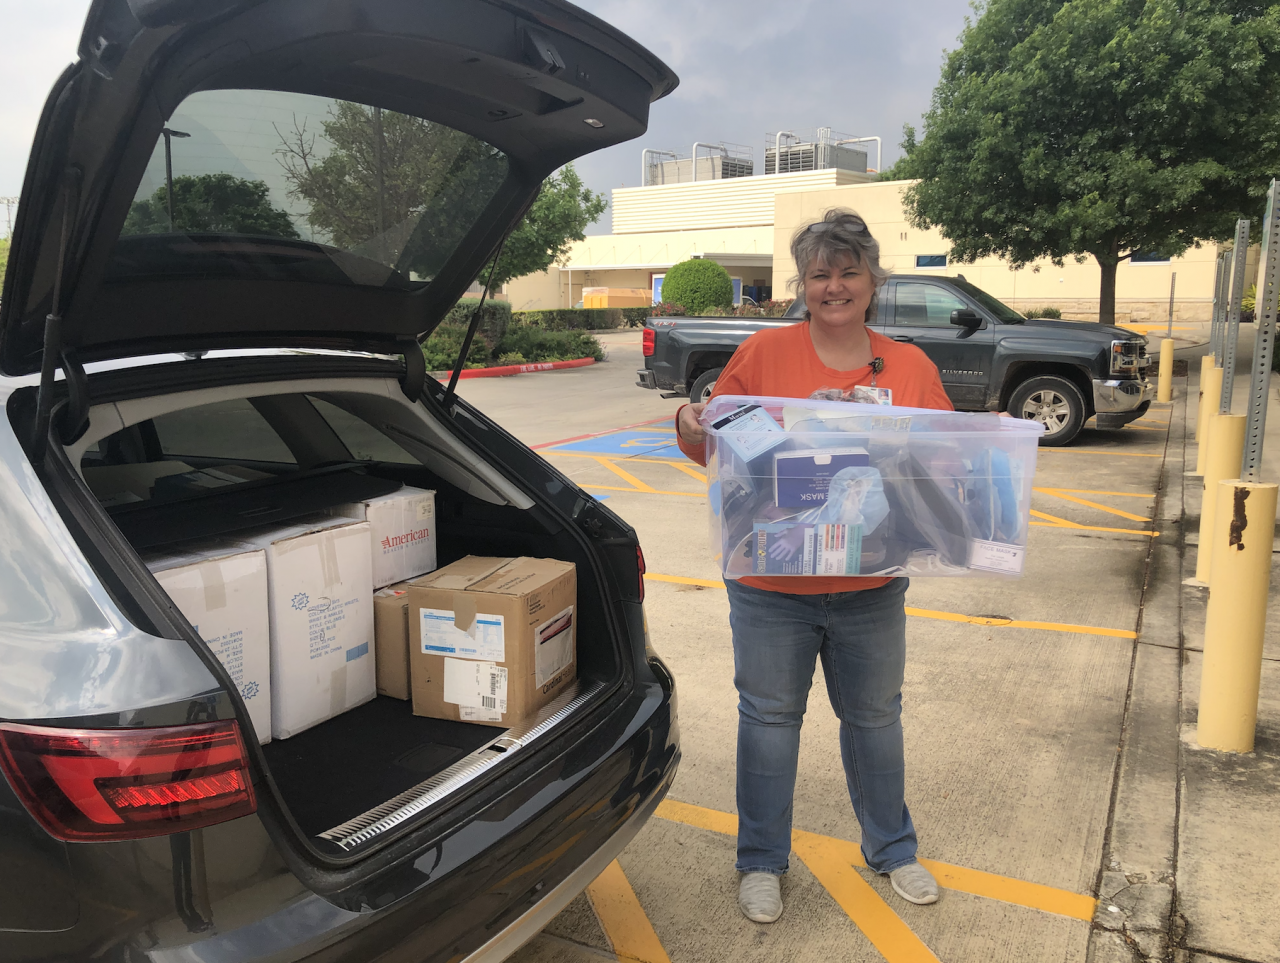 Trinity donates personal protective equipment to local medical center